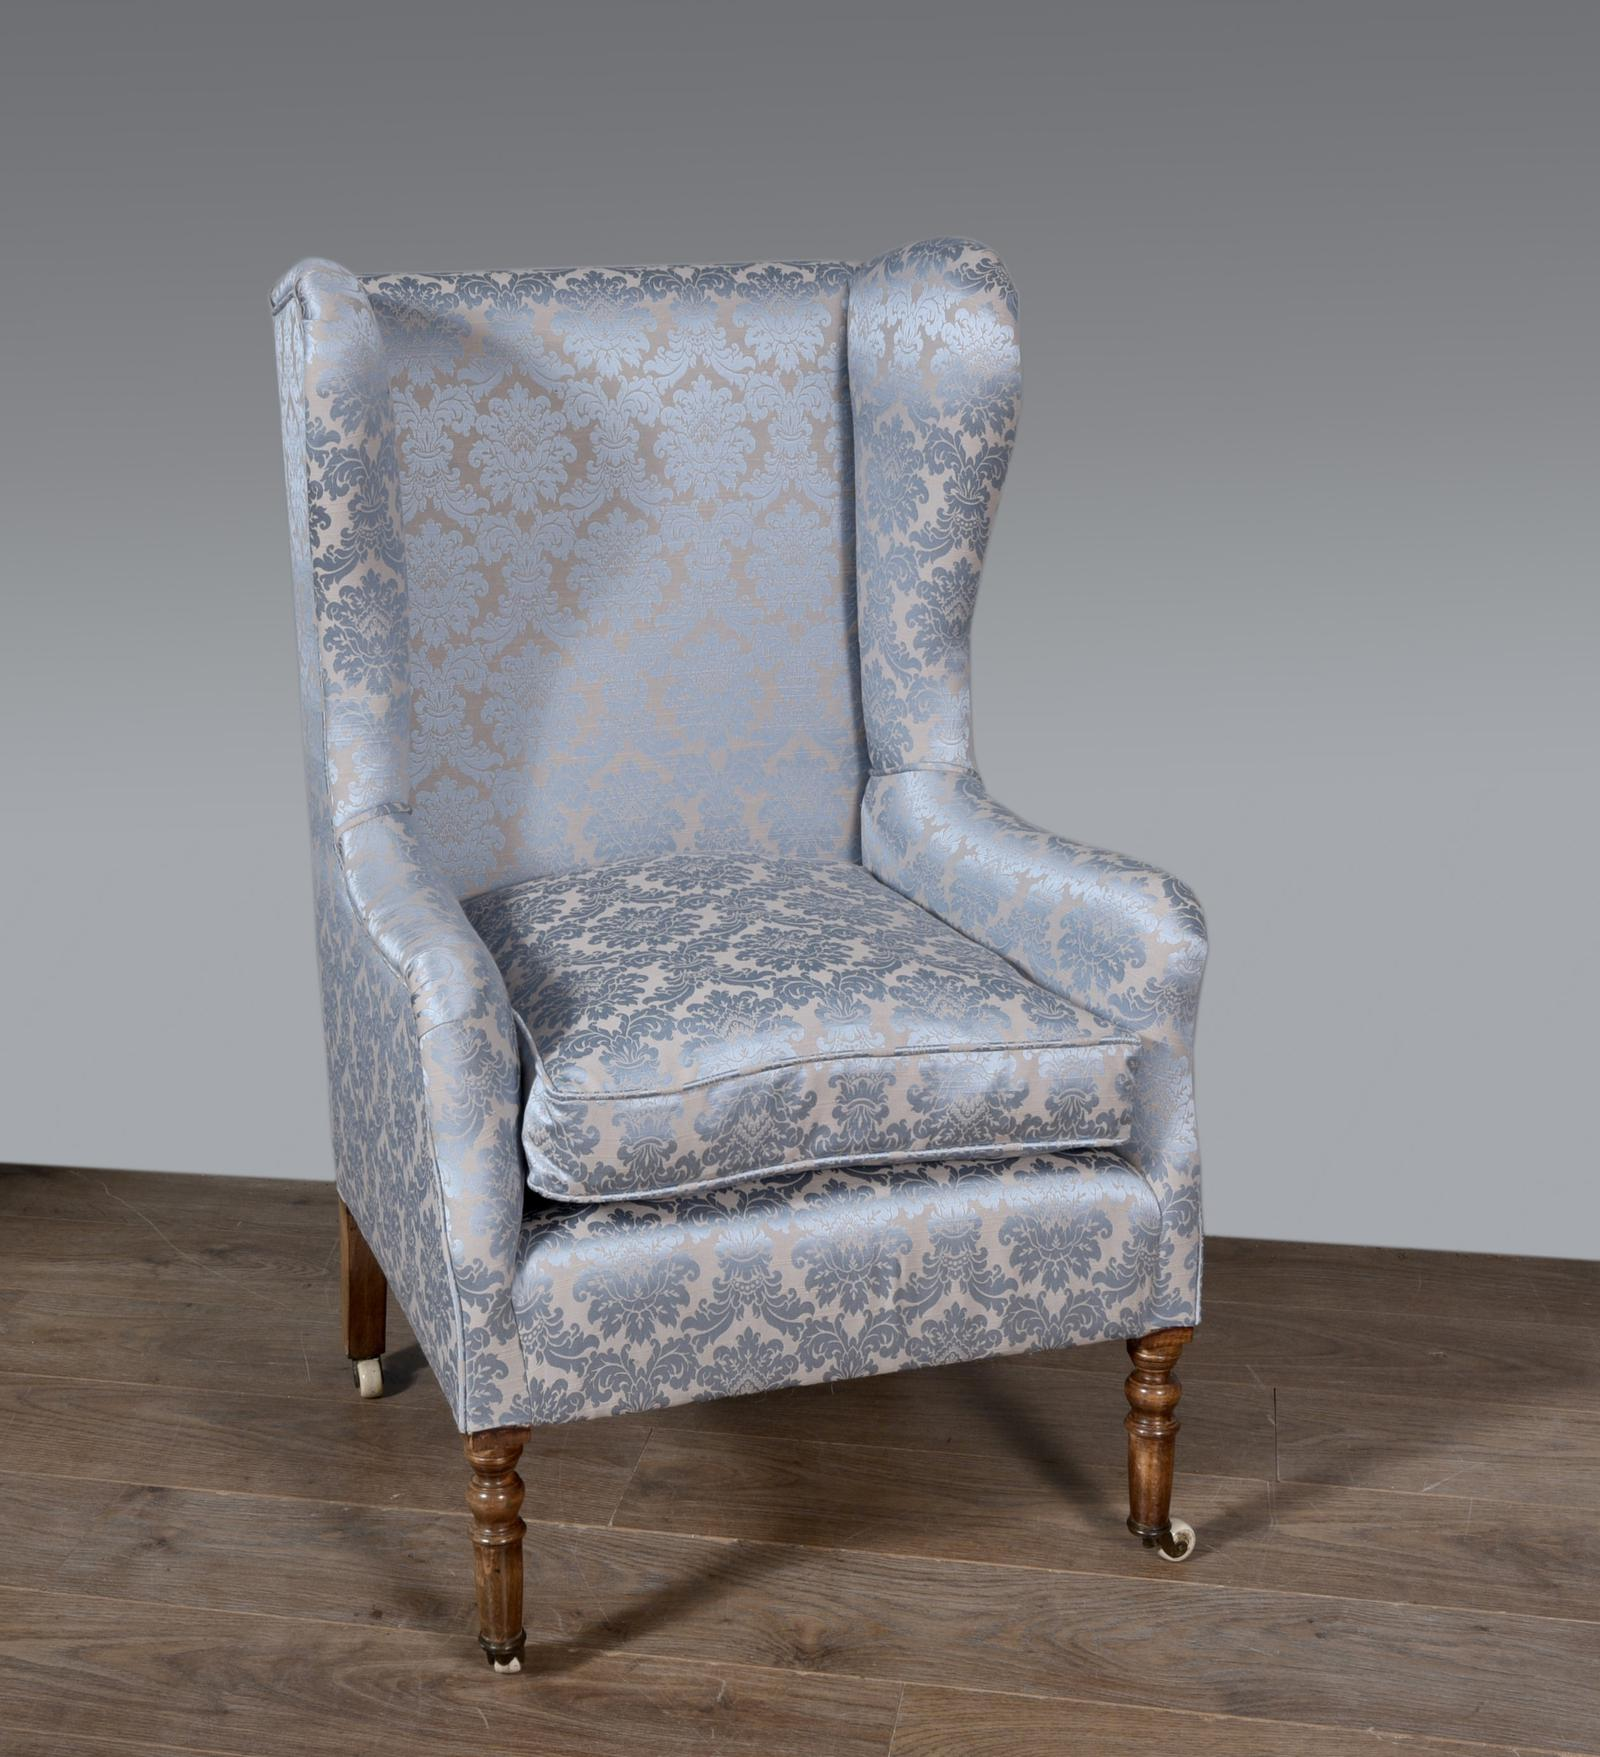 Antique Wing Chair by Gregory & co (1 of 1)